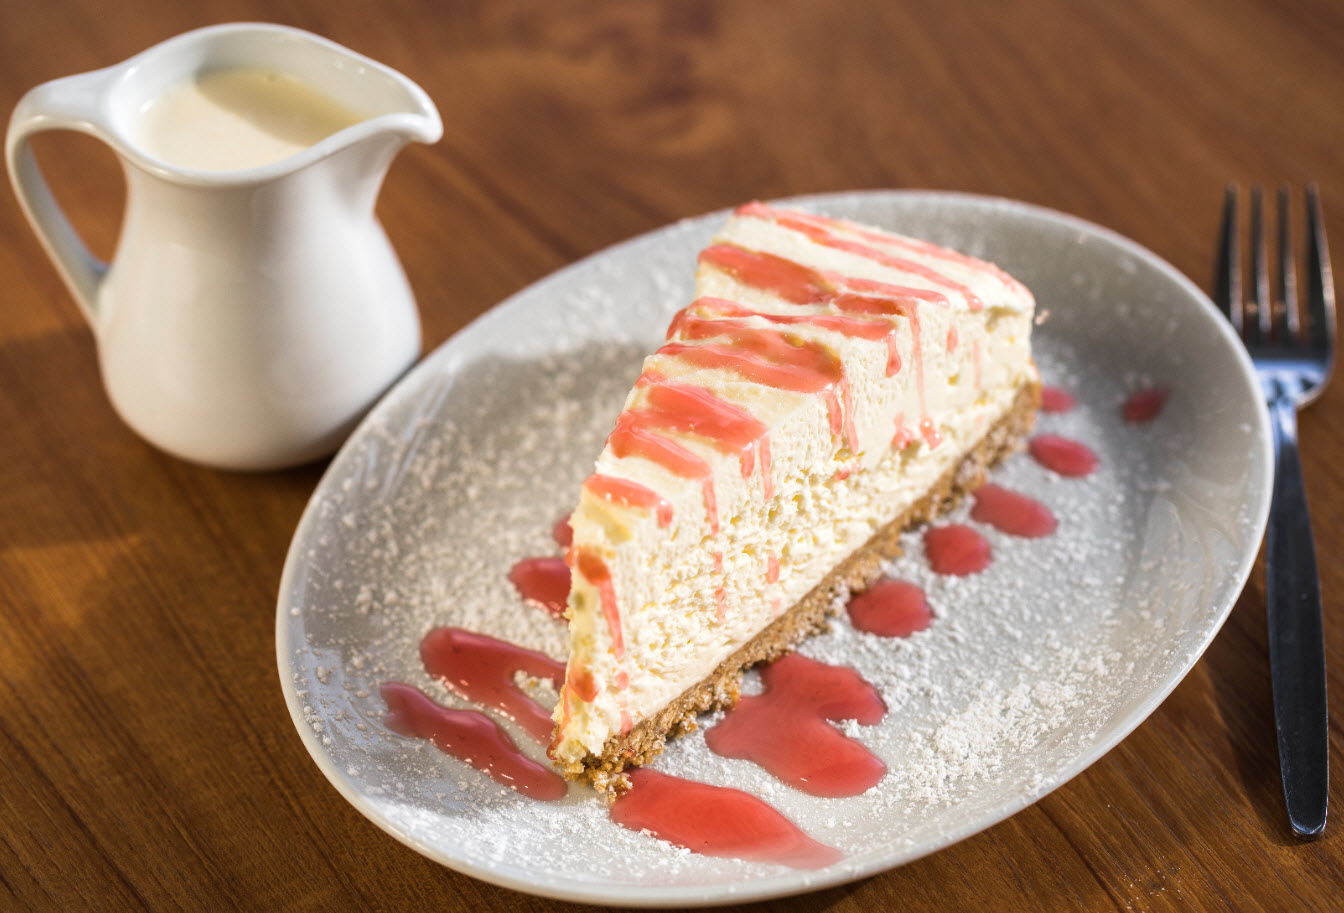 Cheesecake of the Day at The Lobster Pot (Please Note: This changes regularly)